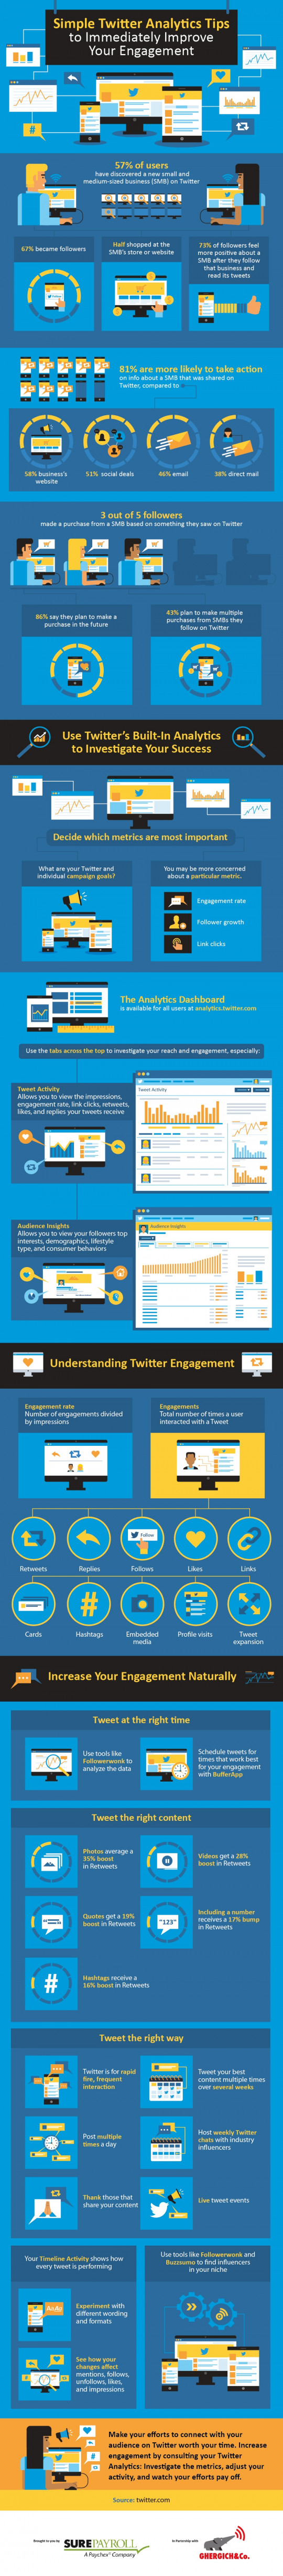 Simple Twitter Analytics Tips to Immediately Improve Your Engagement